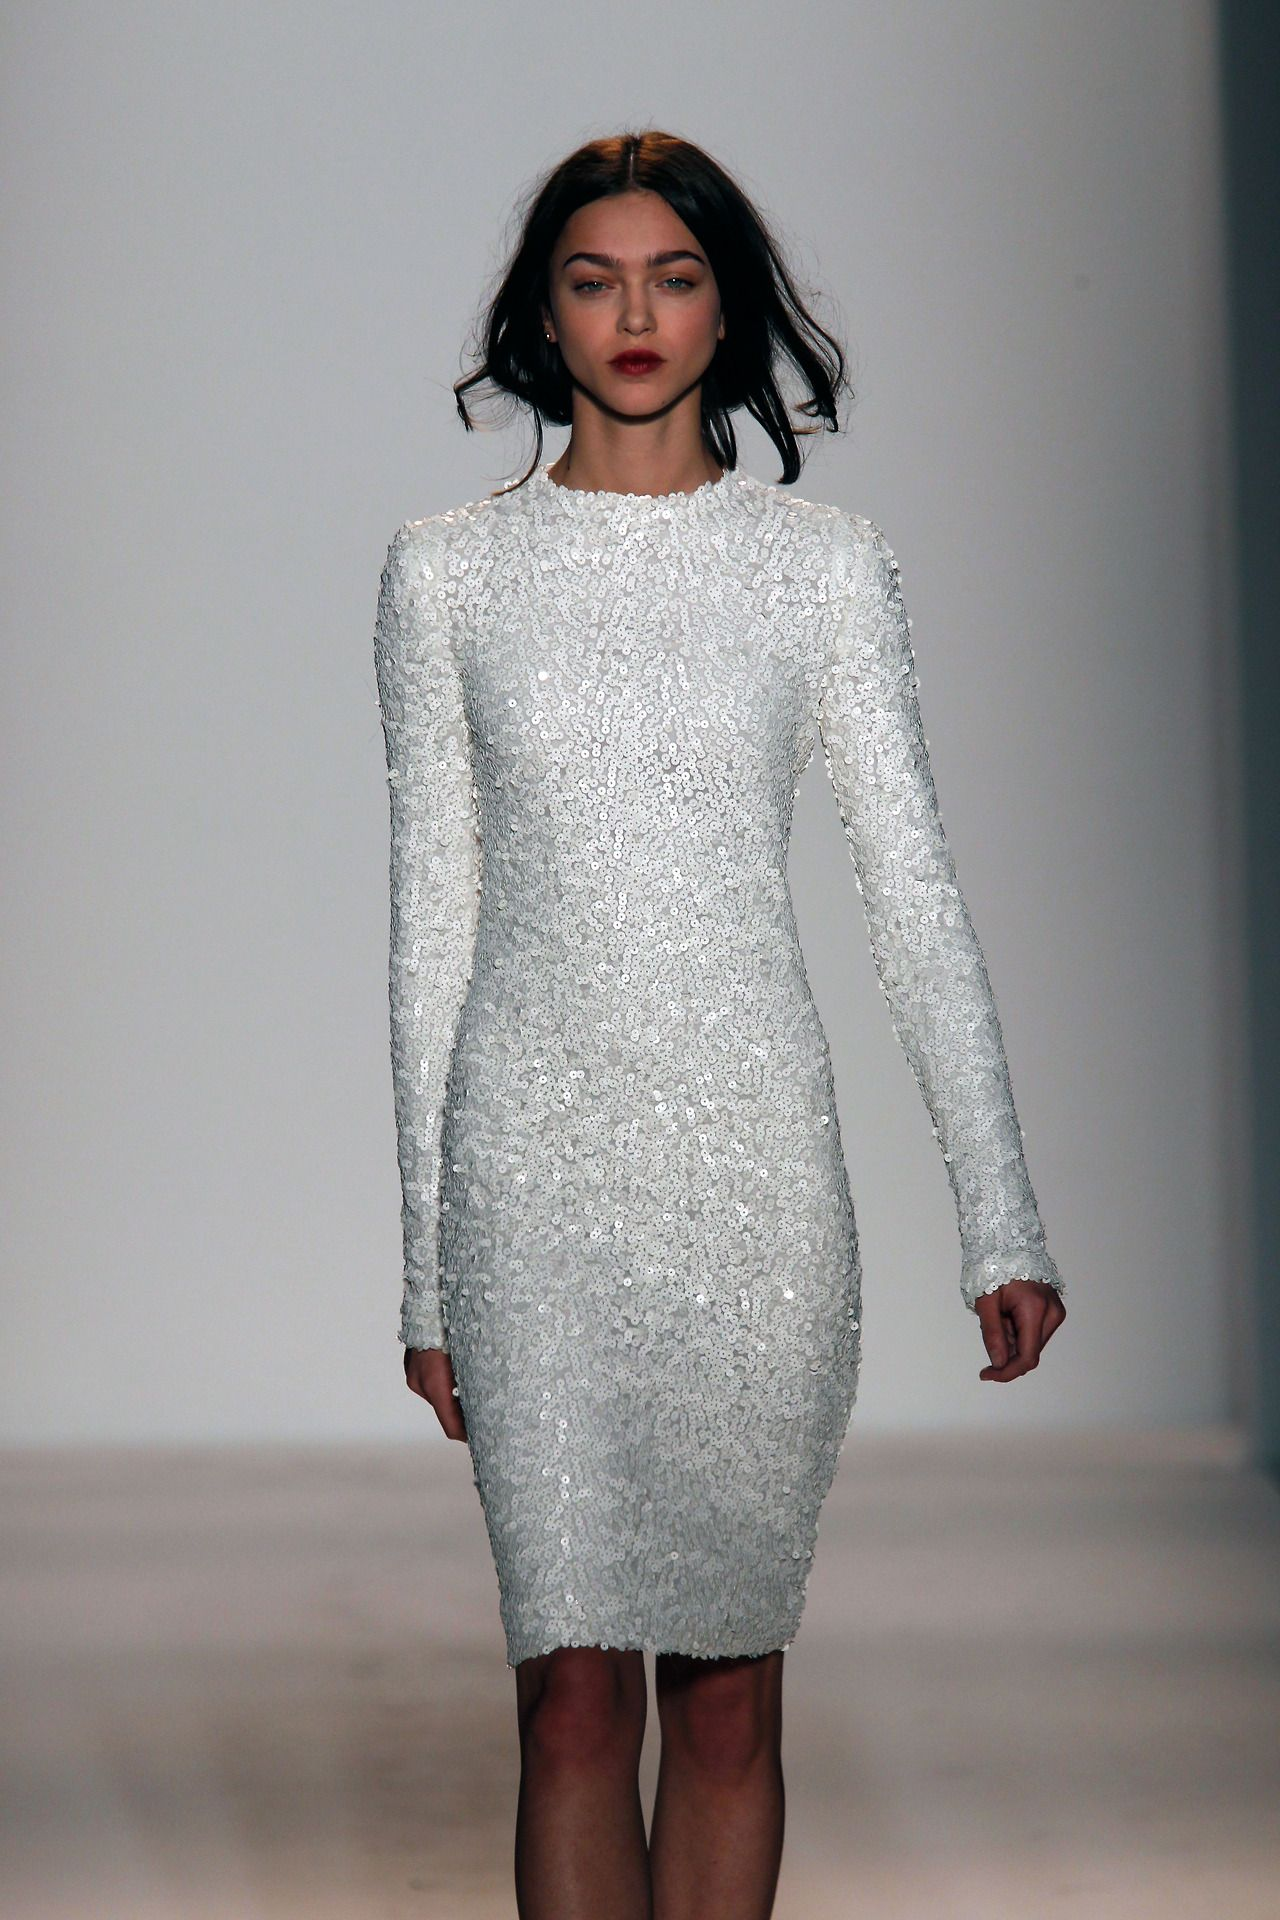 The Perfect Time For Honeymoon After The Wedding Dress White Sequin Dress Fashion Long Sequin Dress [ 1920 x 1280 Pixel ]